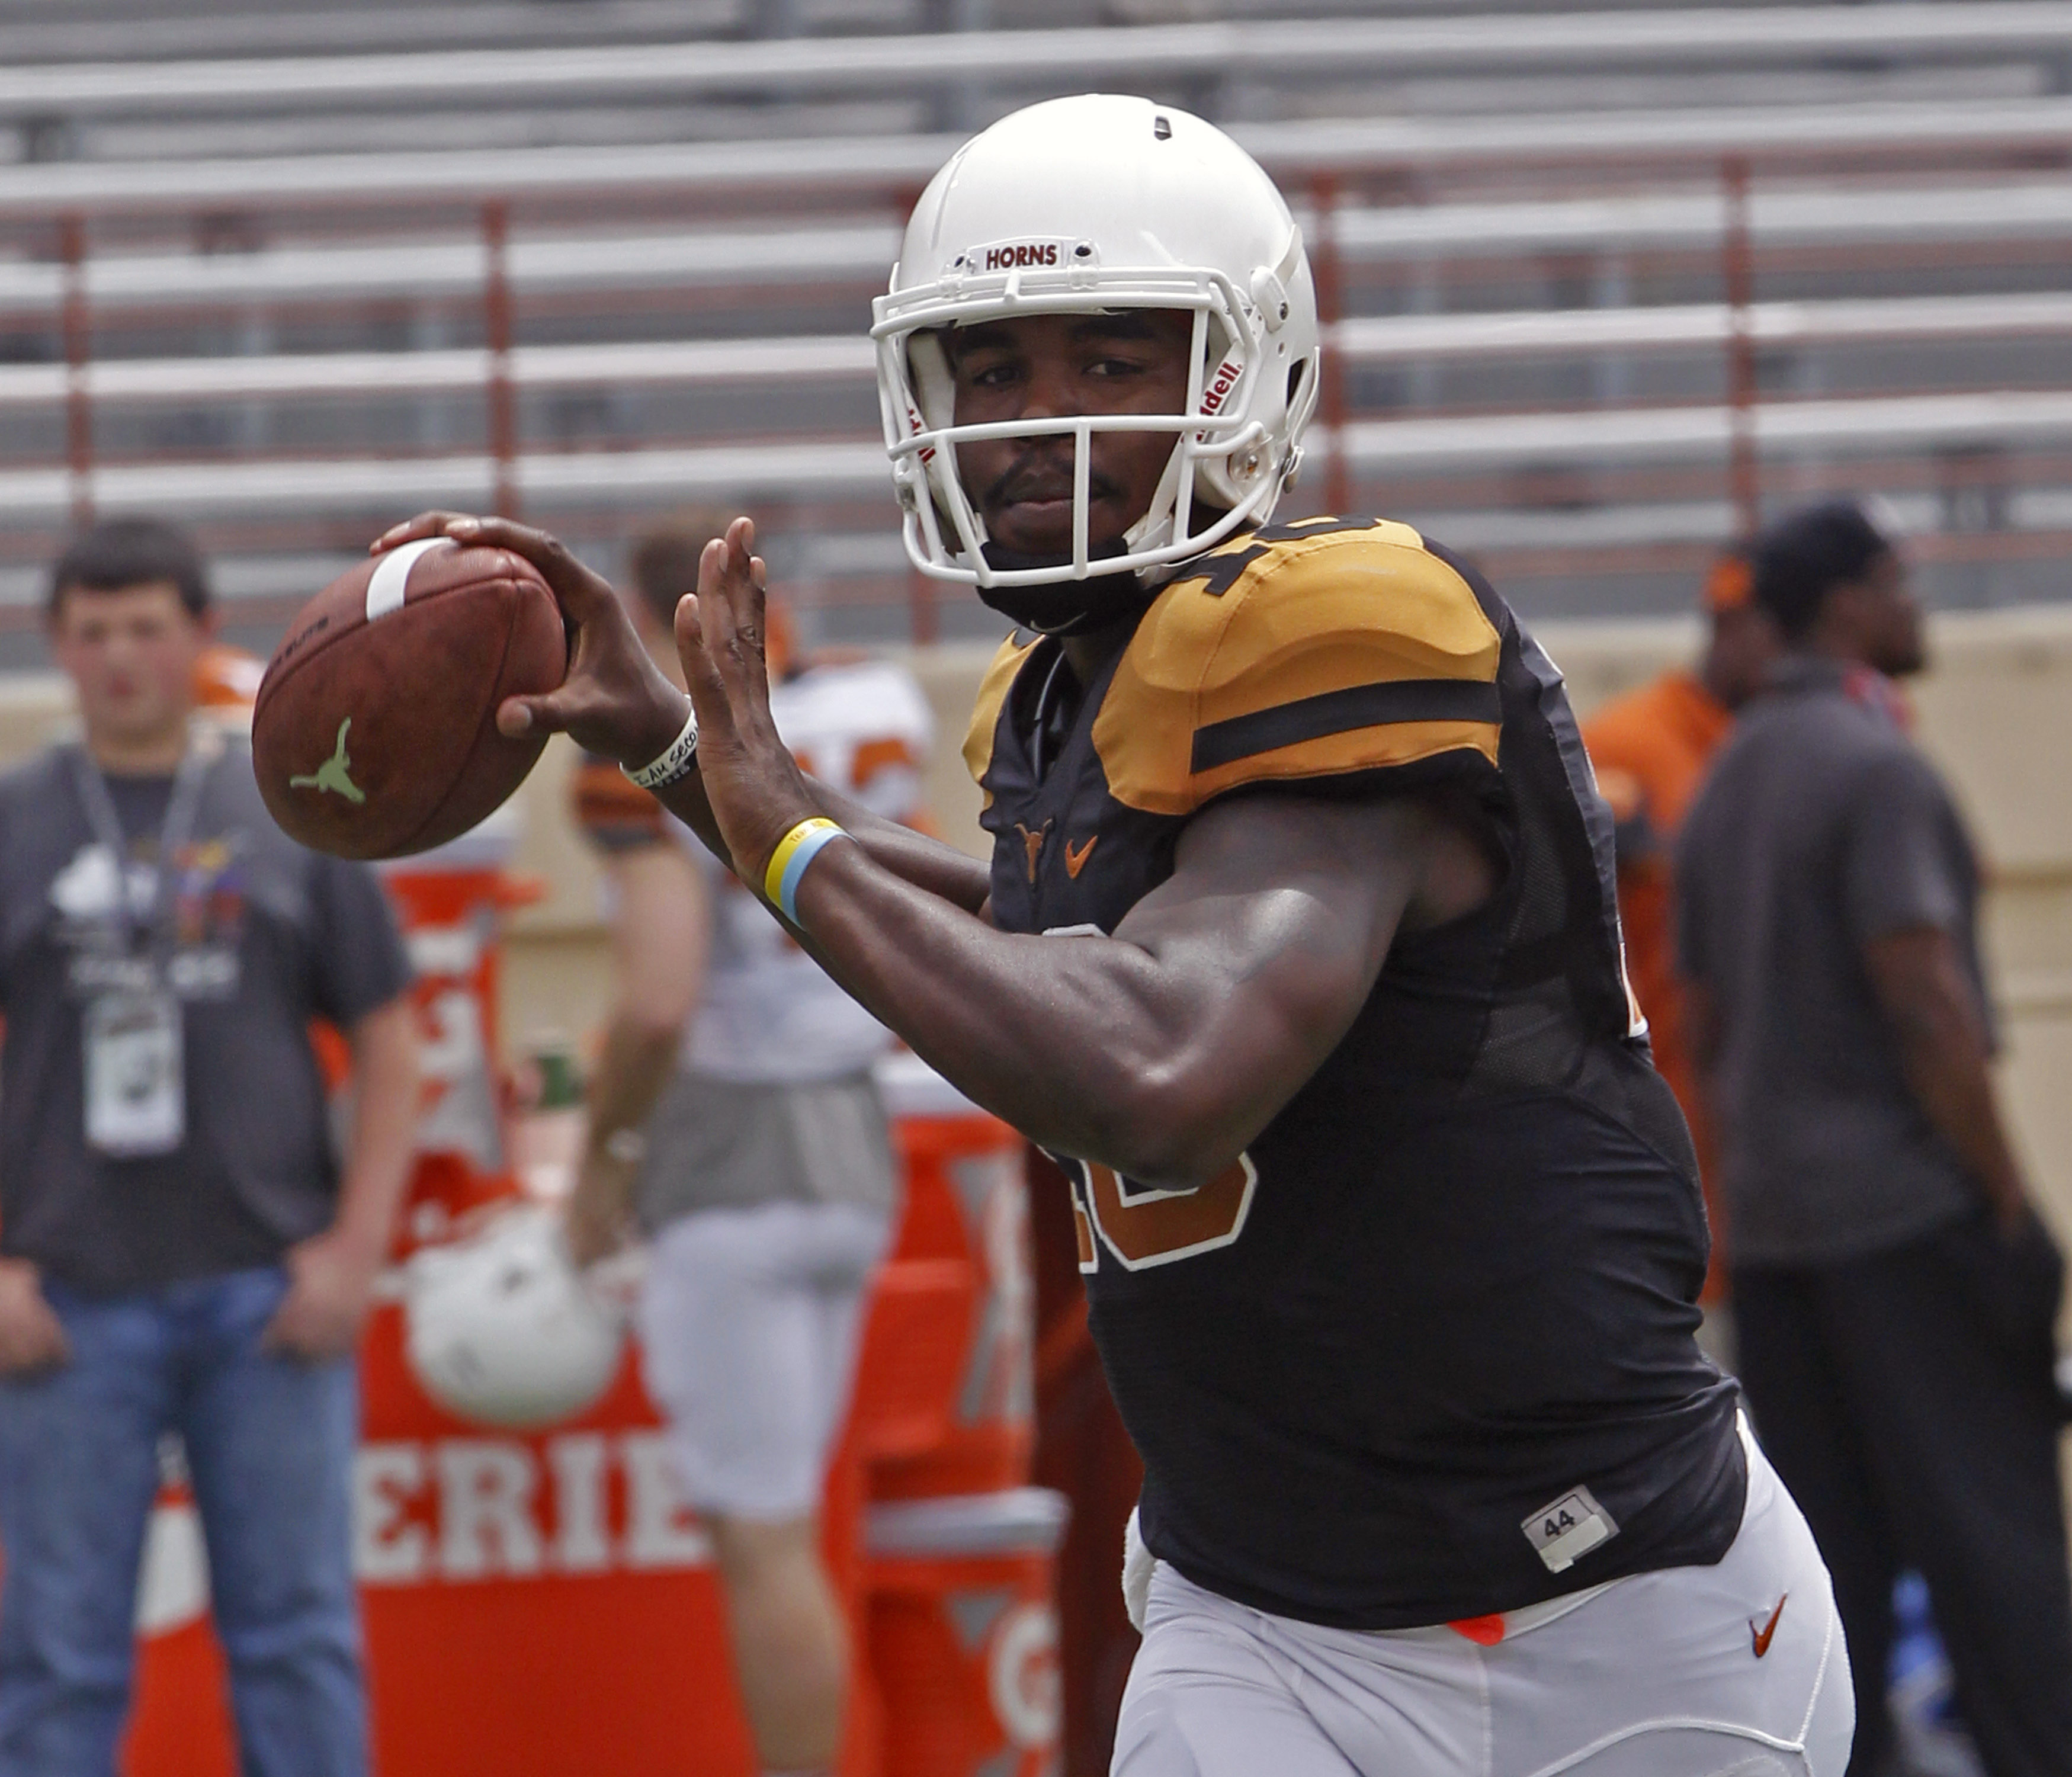 Texas quarterback Tyrone Swoopes warms up before the start of Texas' Orange and White spring NCAA college football game, Saturday, April 18, 2015, in Austin, Texas. (AP Photo/Michael Thomas)